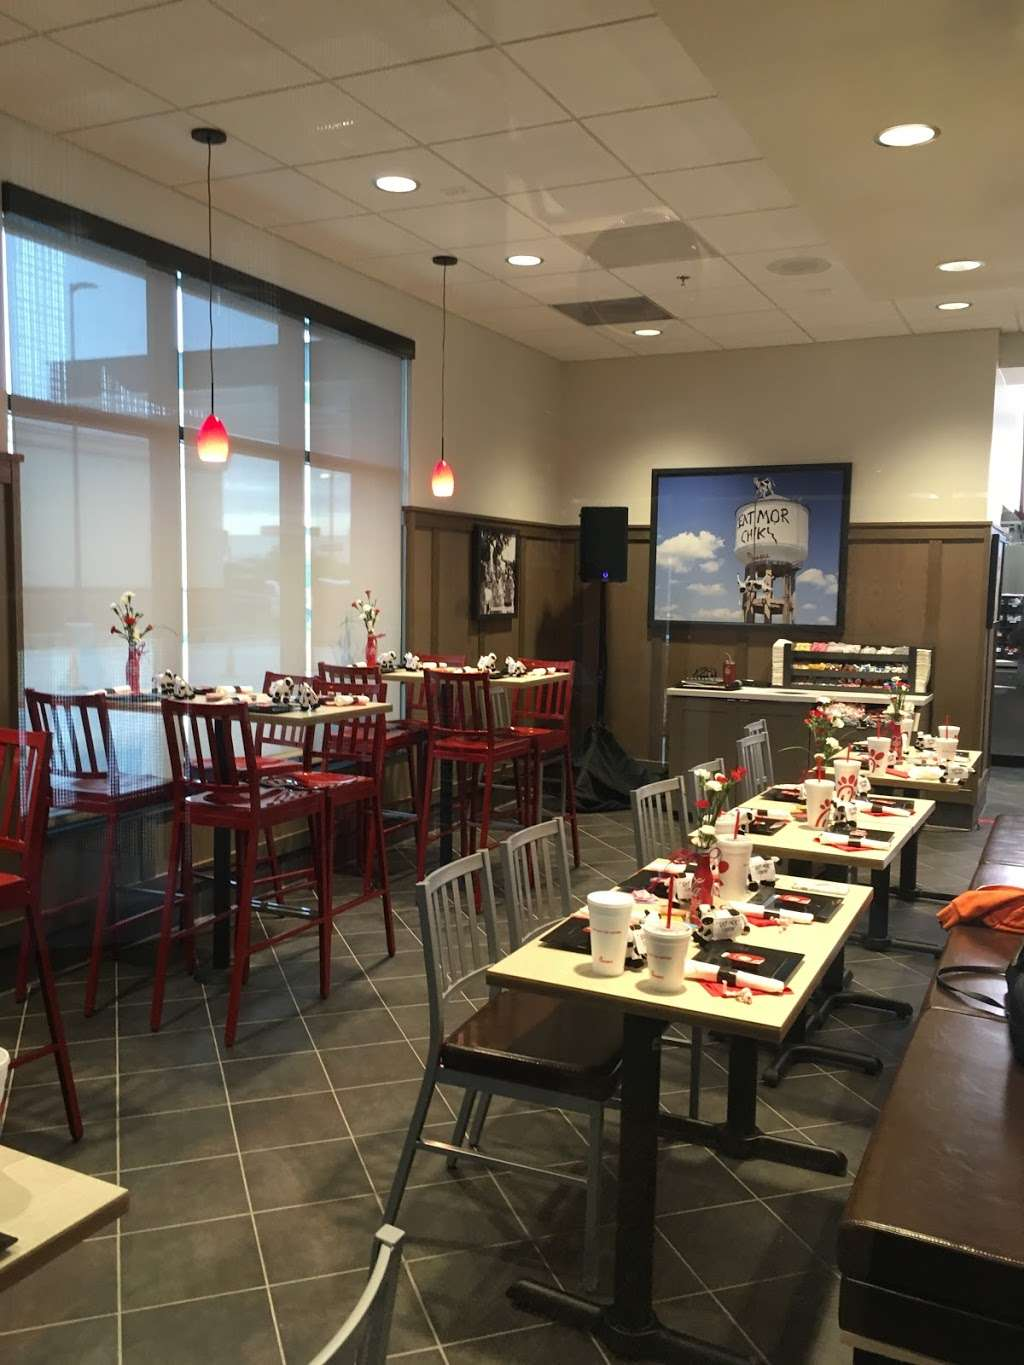 Chick-Fil-A - restaurant  | Photo 2 of 10 | Address: 3440 Palmer Hwy, Texas City, TX 77590, USA | Phone: (409) 943-4244